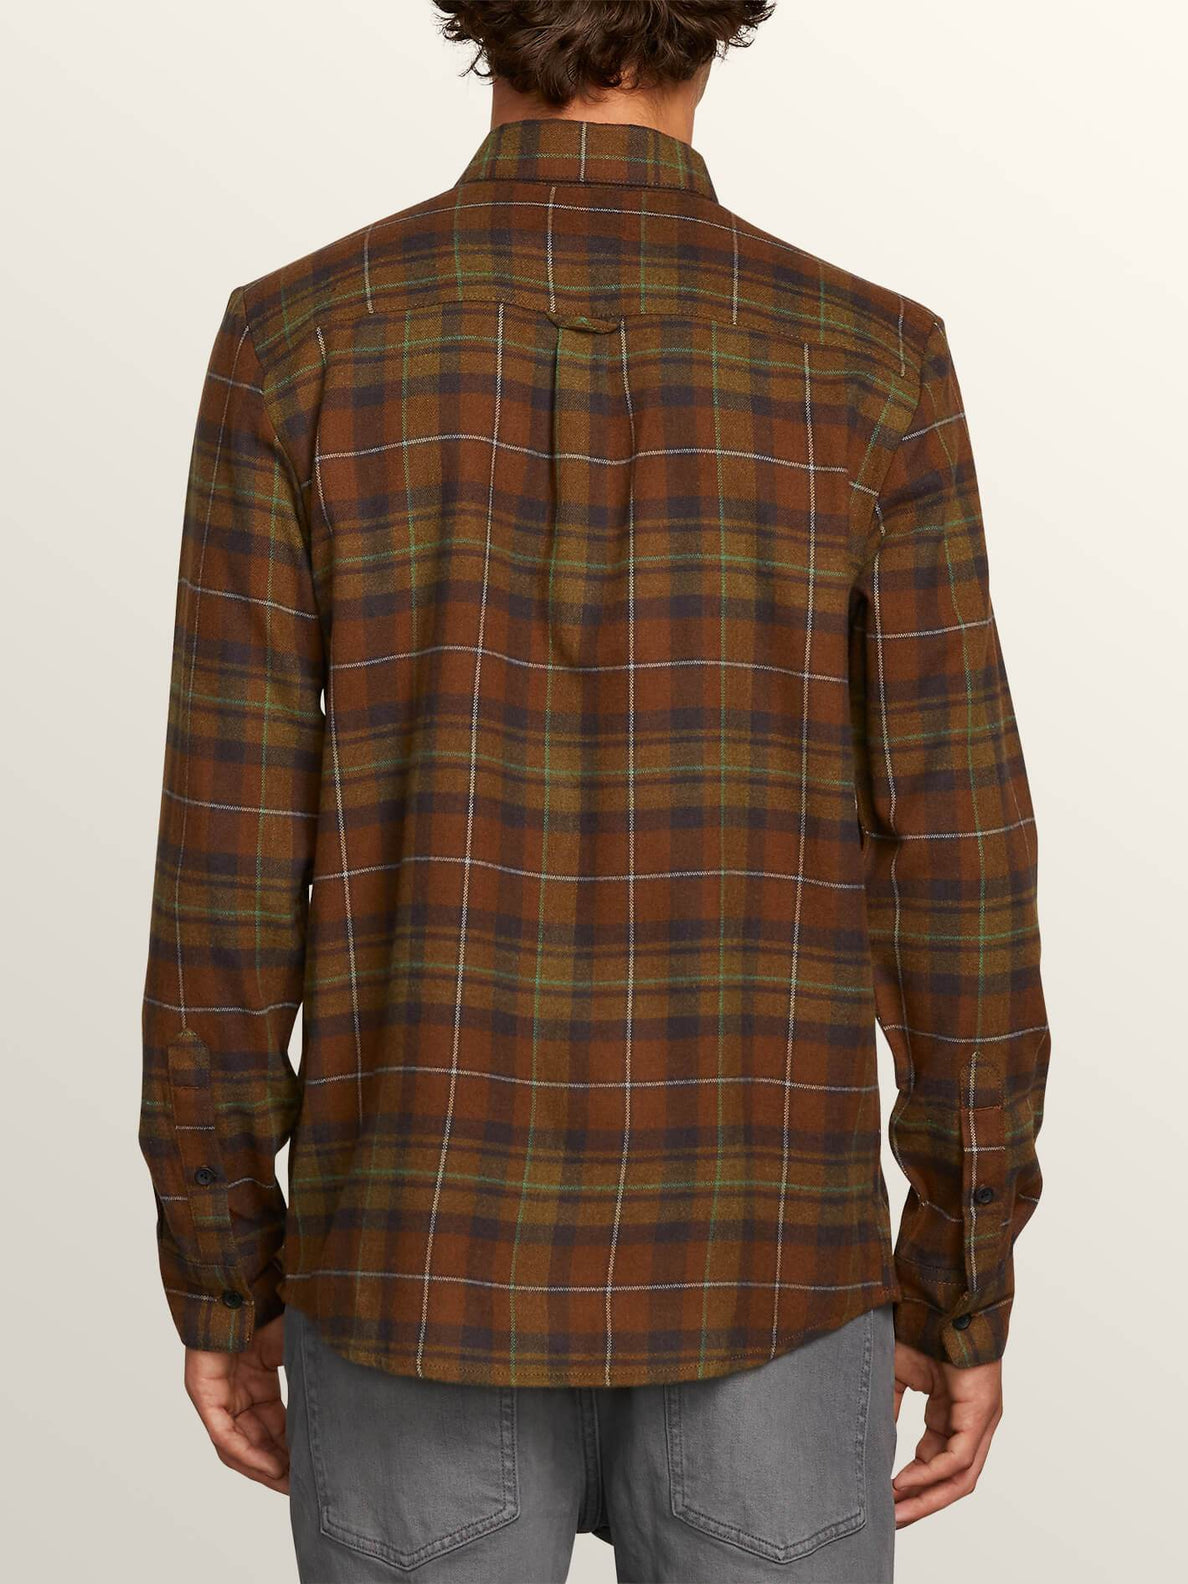 Lumberg Long Sleeve Flannel - Vineyard Green